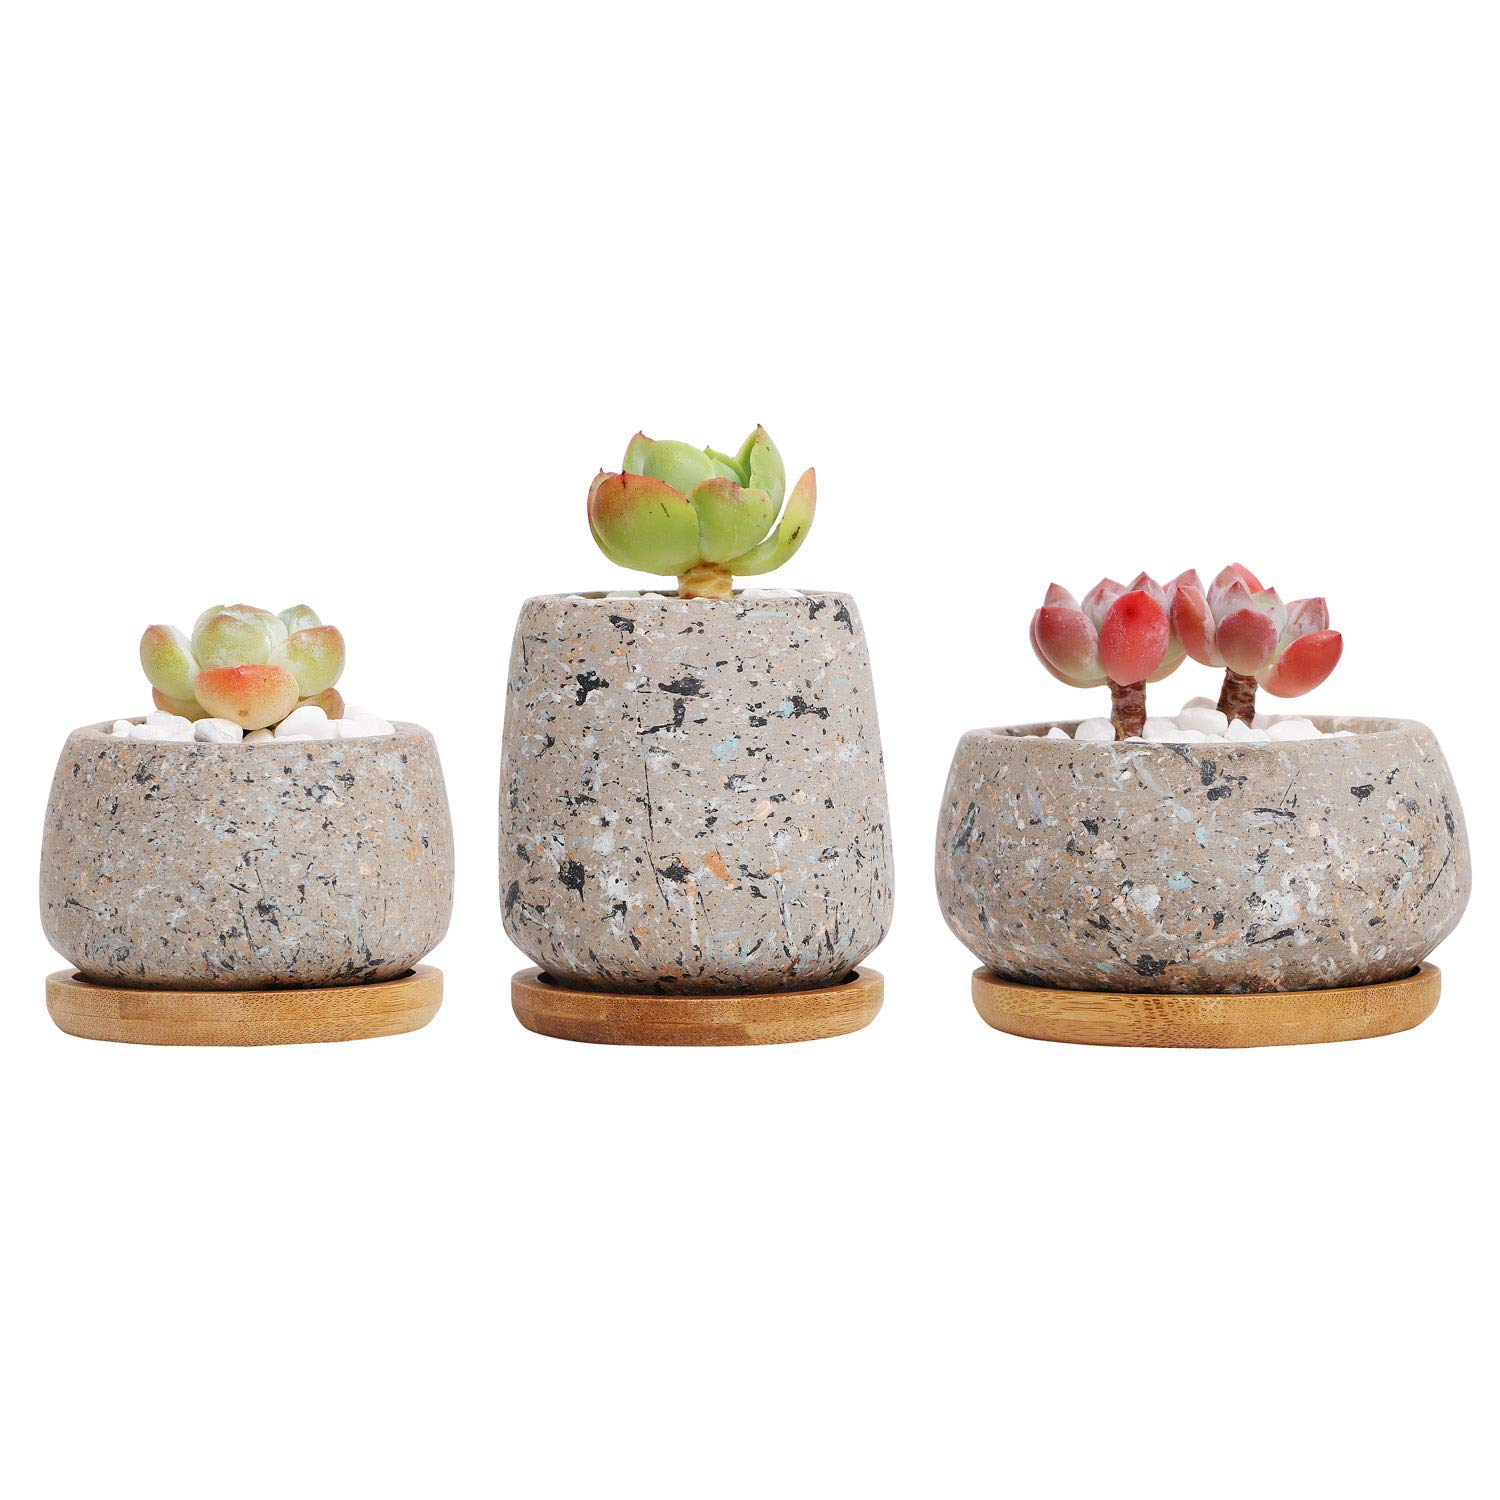 T4U 2.5Inch - 3.5 Inch Cement Succulent Cactus Pot, Concrete Planter Pot Container Window Box, Small Clay Pot for Plants Flowers with Drainage Bamboo Tray for Home Decor, Set of 3(Gray)